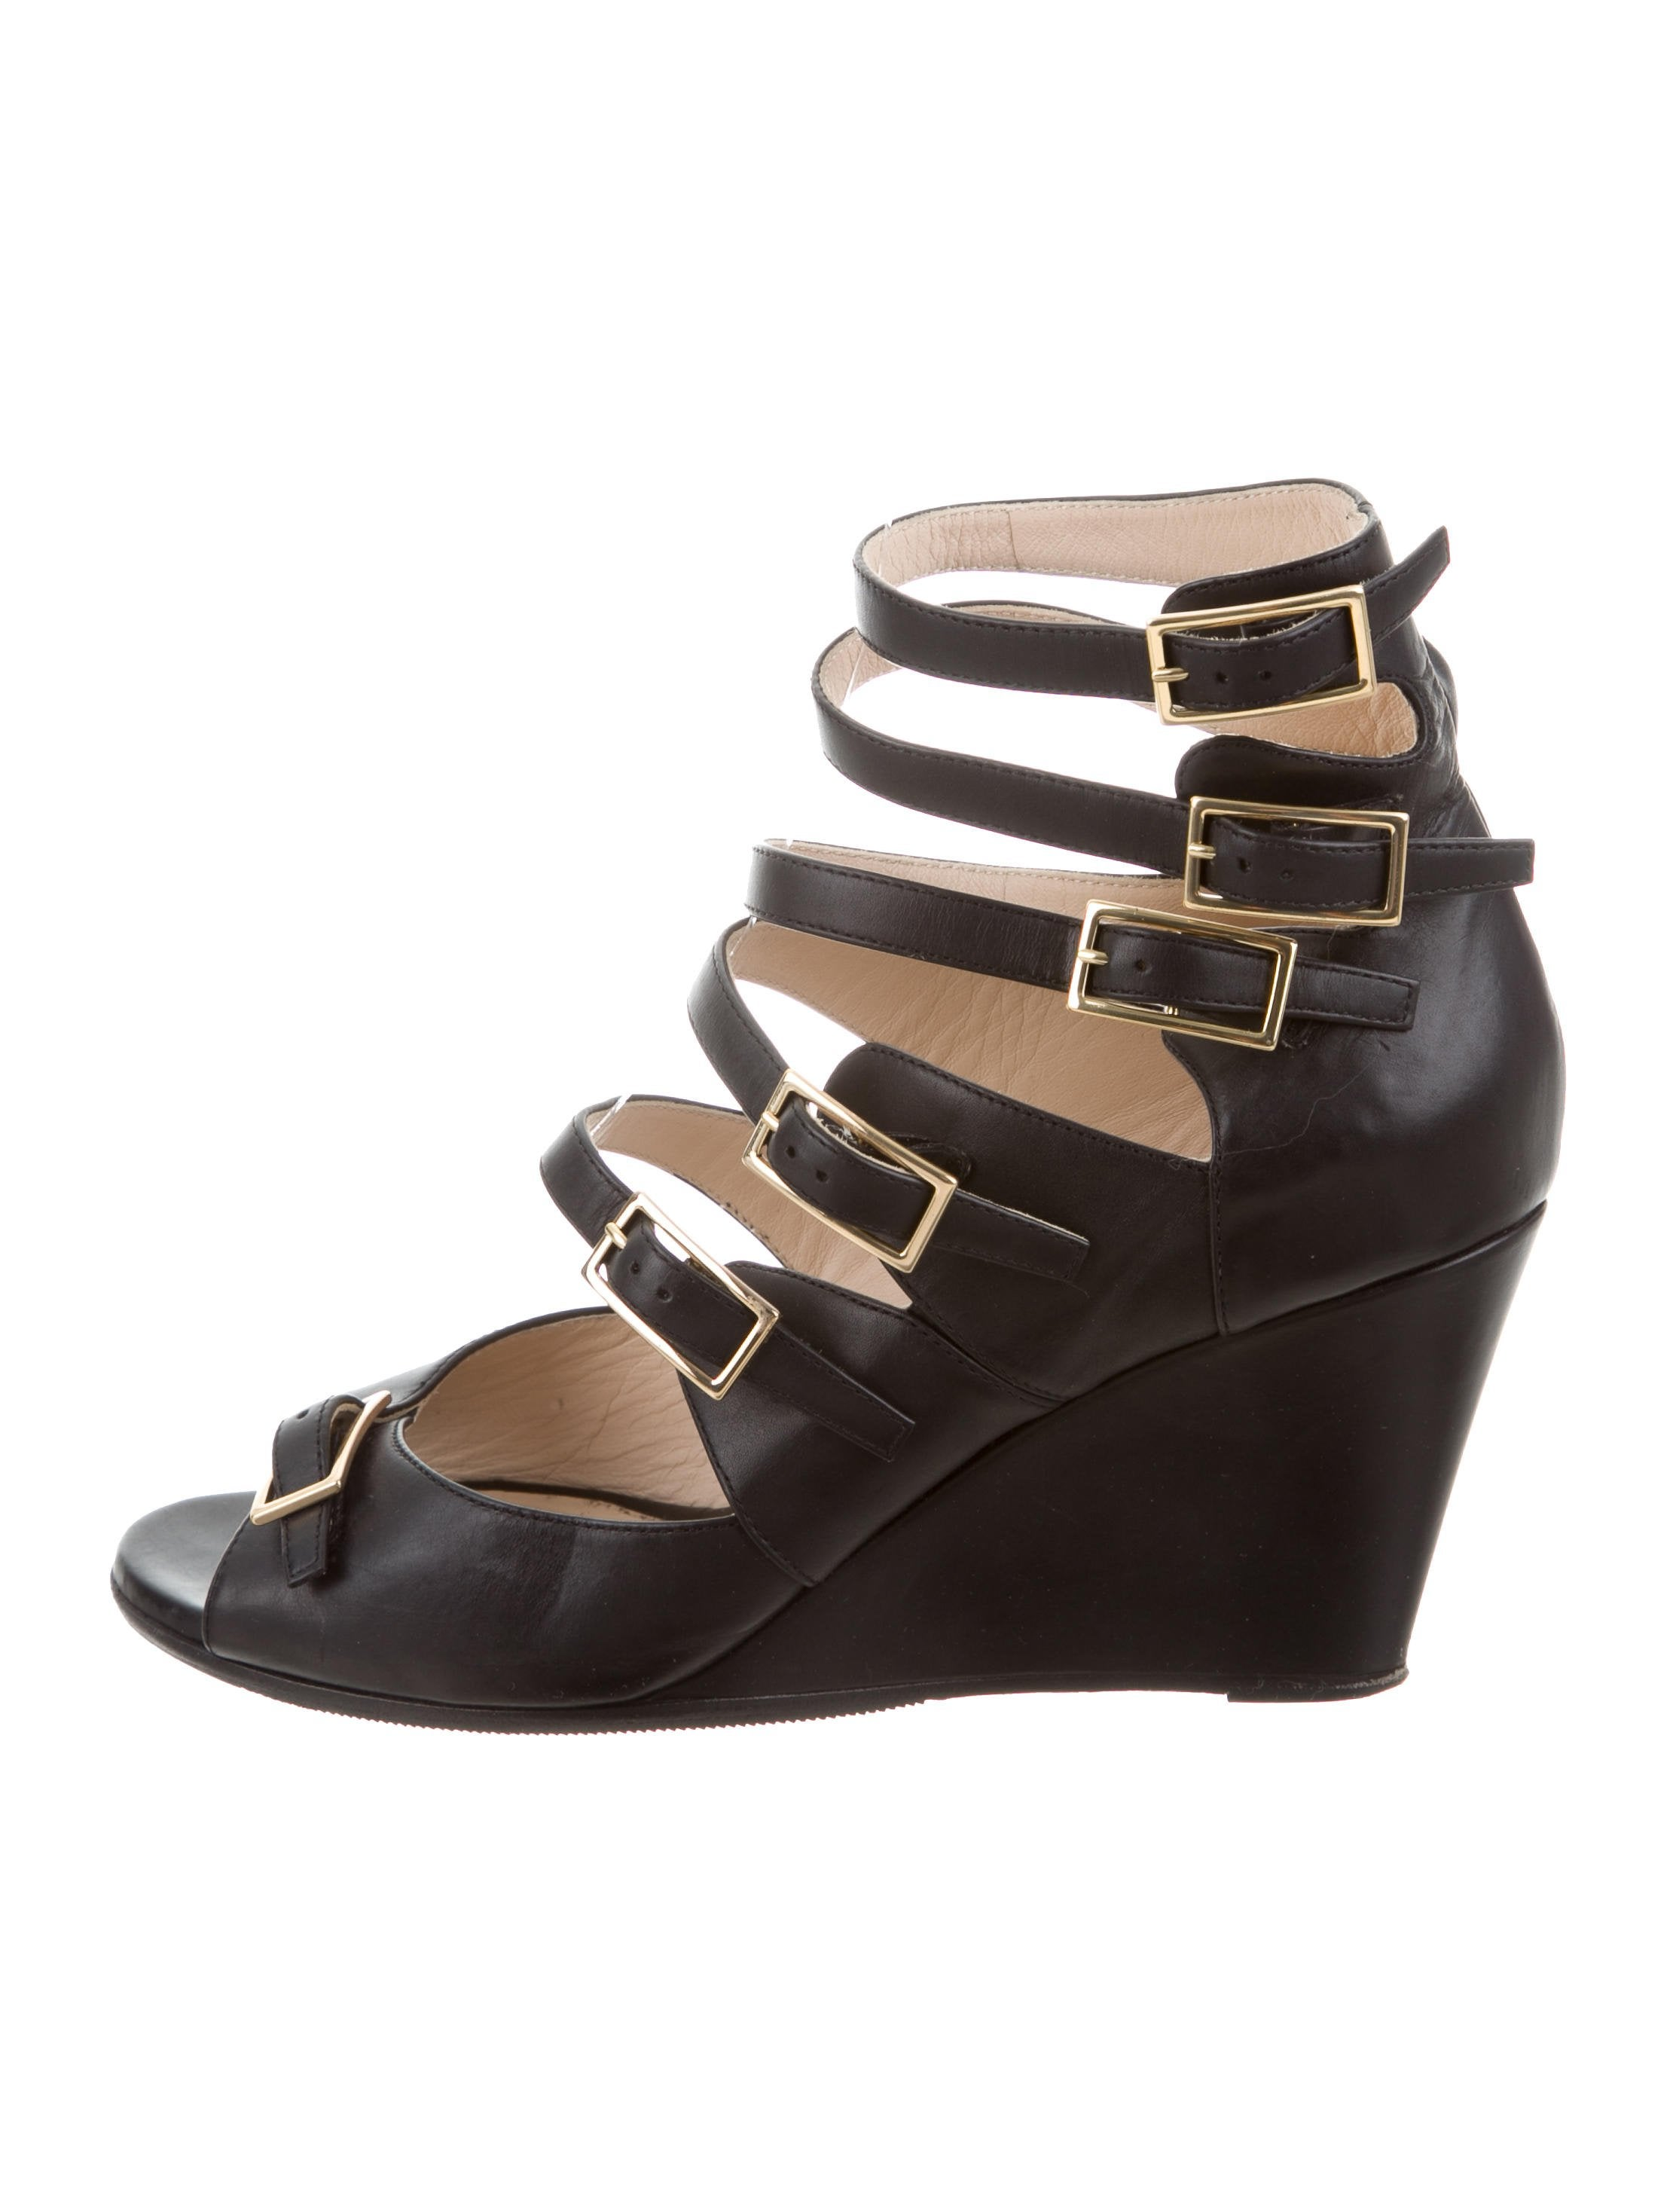 Chloé Arce Leather Wedges pay with visa affordable for sale cheap pick a best tumblr cheap price where to buy gTKy2Sh5K9